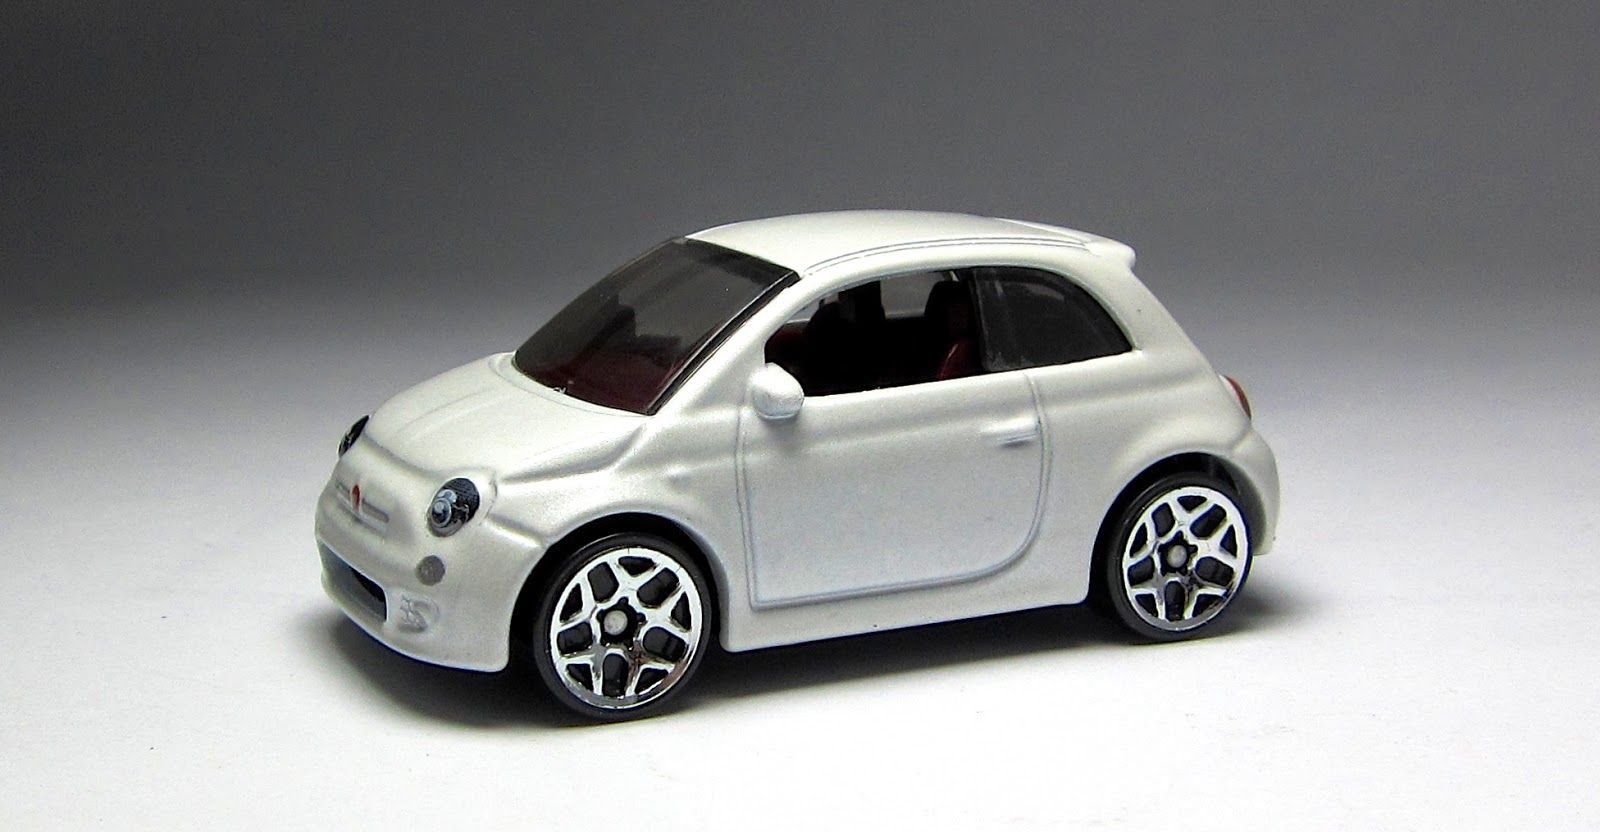 First Look Hot Wheels Fiat 500 In White With Images Fiat